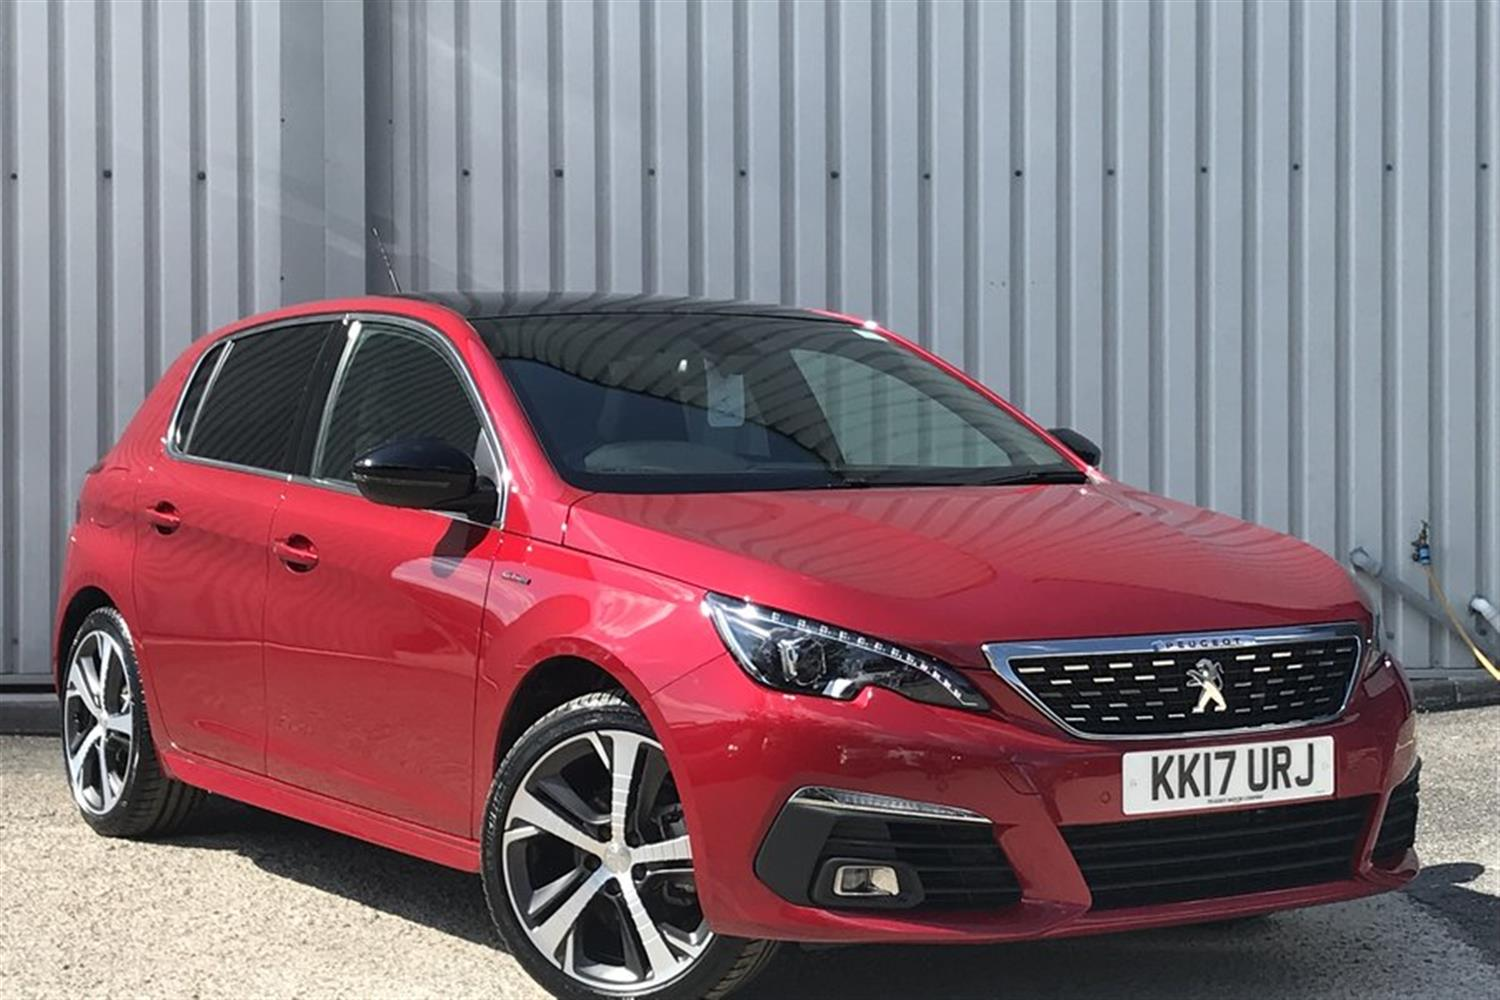 Peugeot 308 1.2 PureTech 130 GT Line (s/s) Hatchback Petrol Ultimate Red Pearlescent at Gateway Peugeot Crewe Crewe